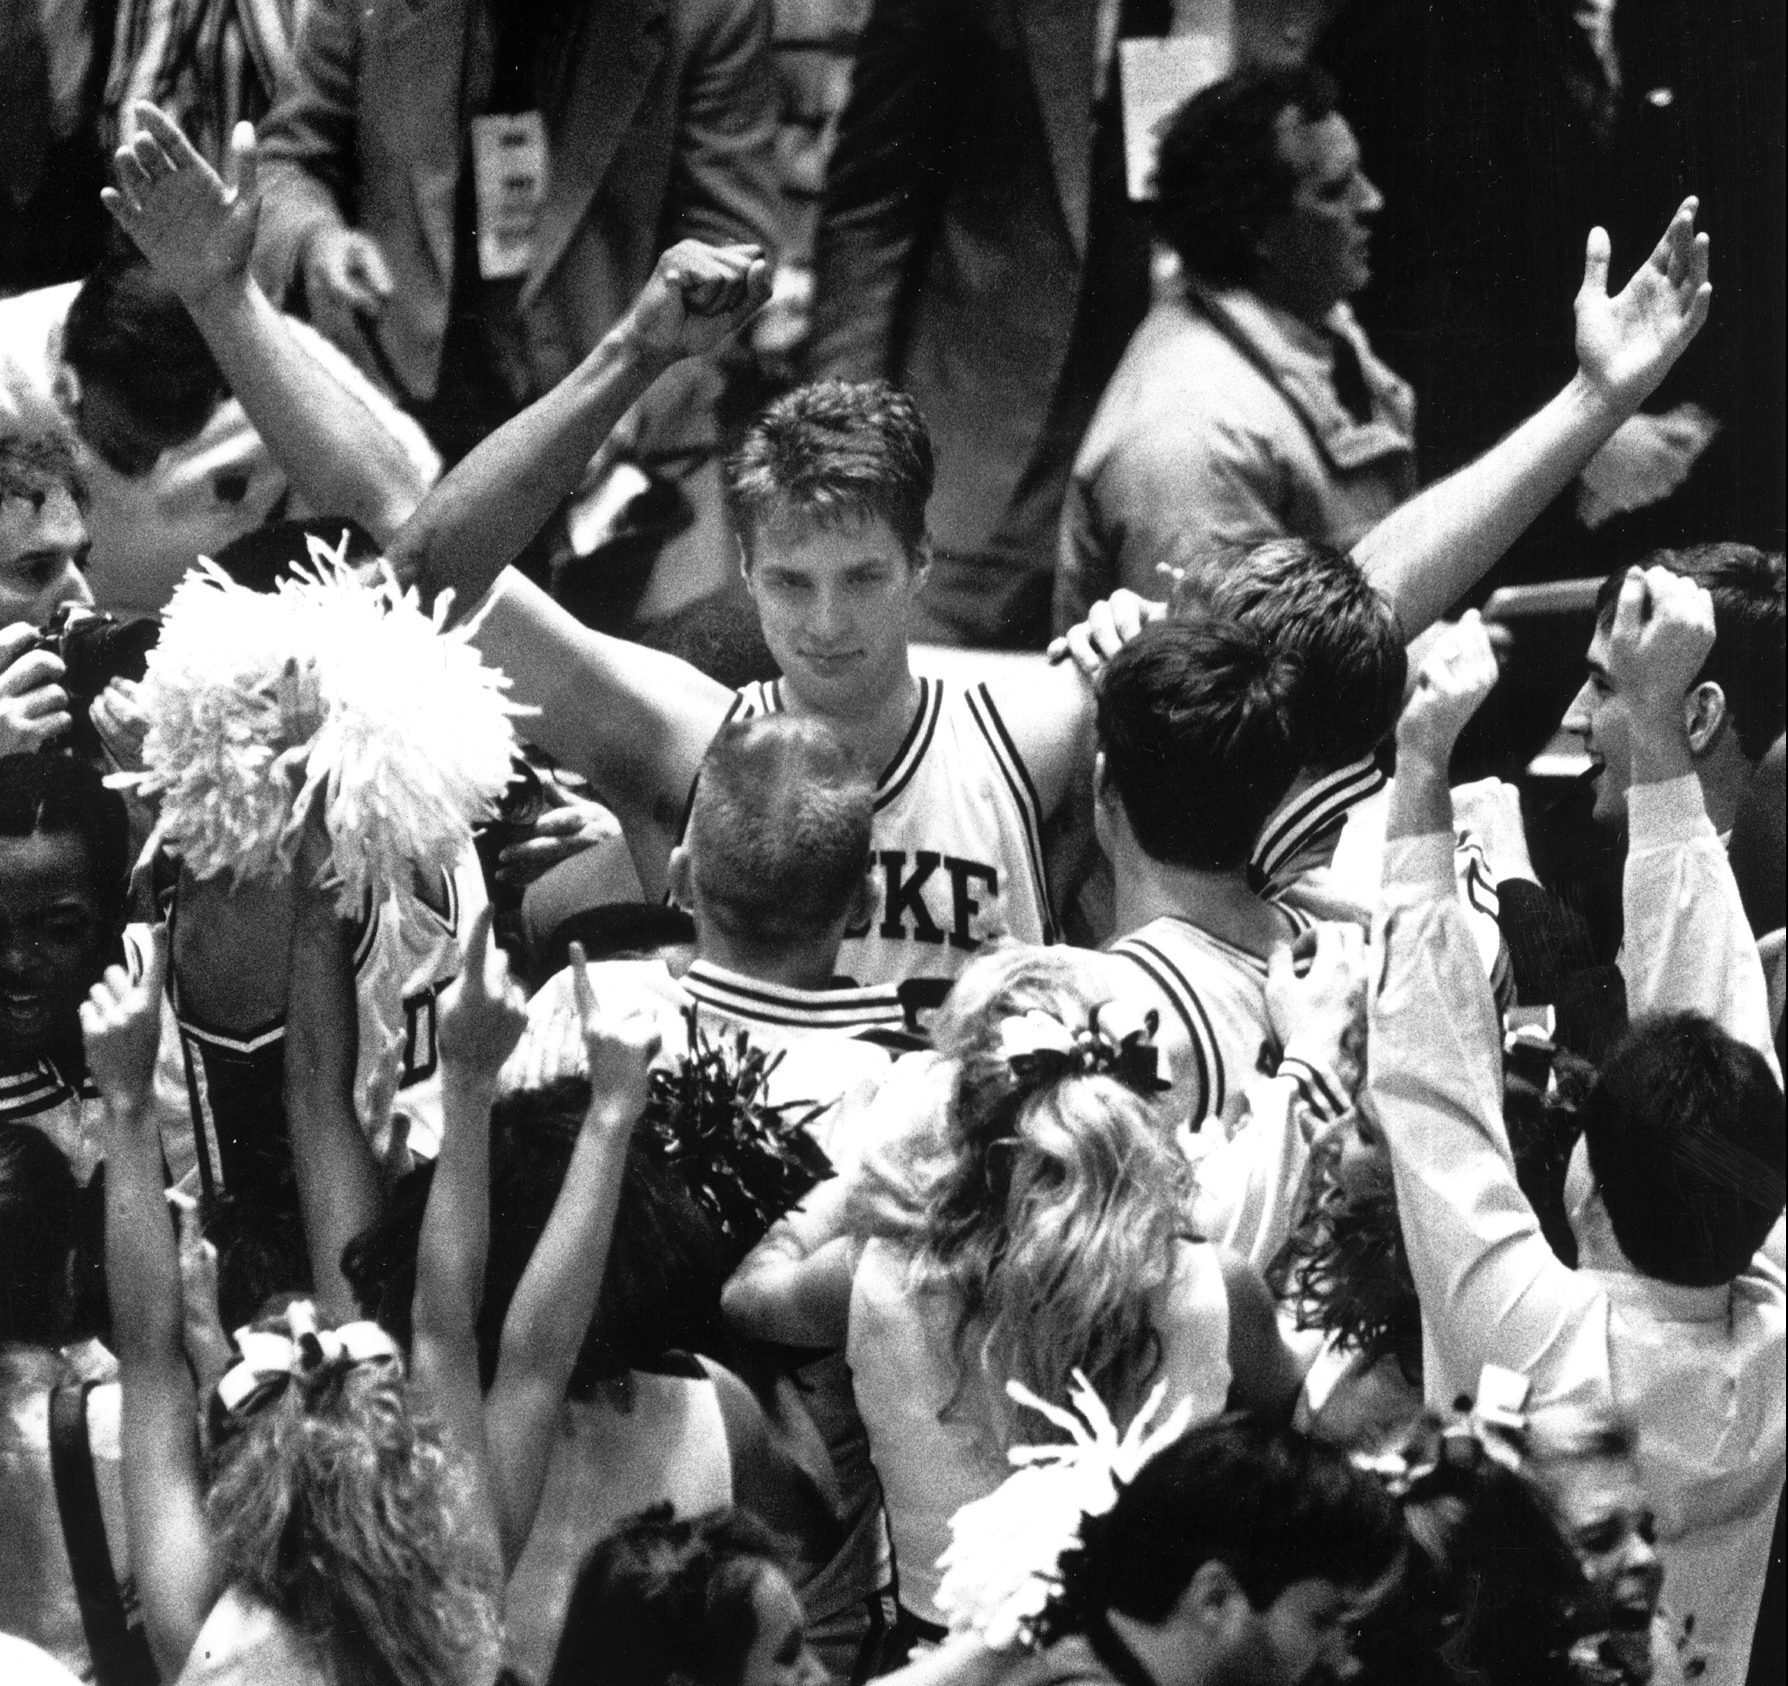 Duke's Christian Laettner celebrates his game-winning basket against Kentucky in 1992's Eastern Regional Final. (Photo by Charles Fox, courtesy of the Philadelphia Inquirer)